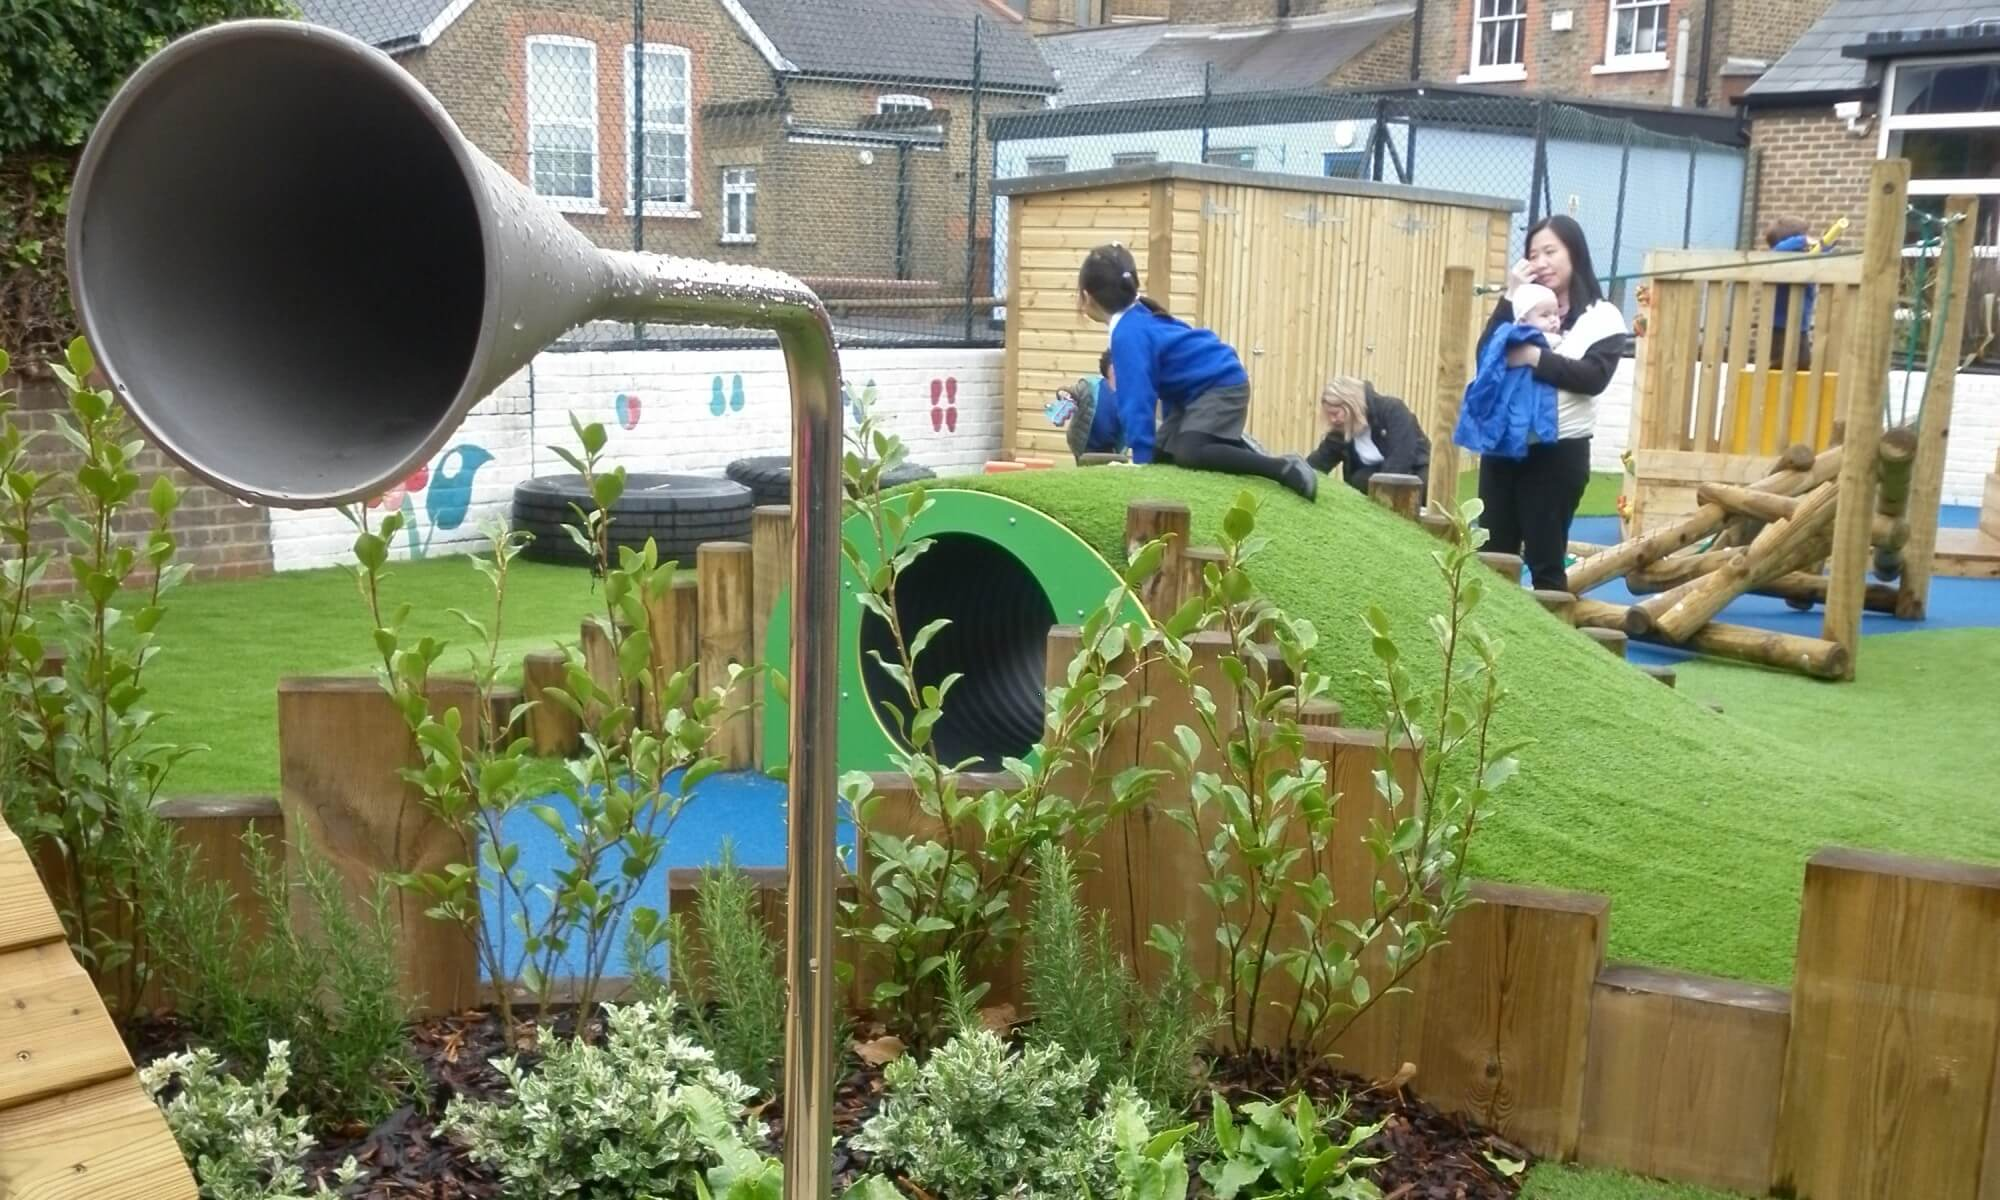 School Playground design & installation at Trinity St Mary's School in Balham, London | Playcubed Playgrounds